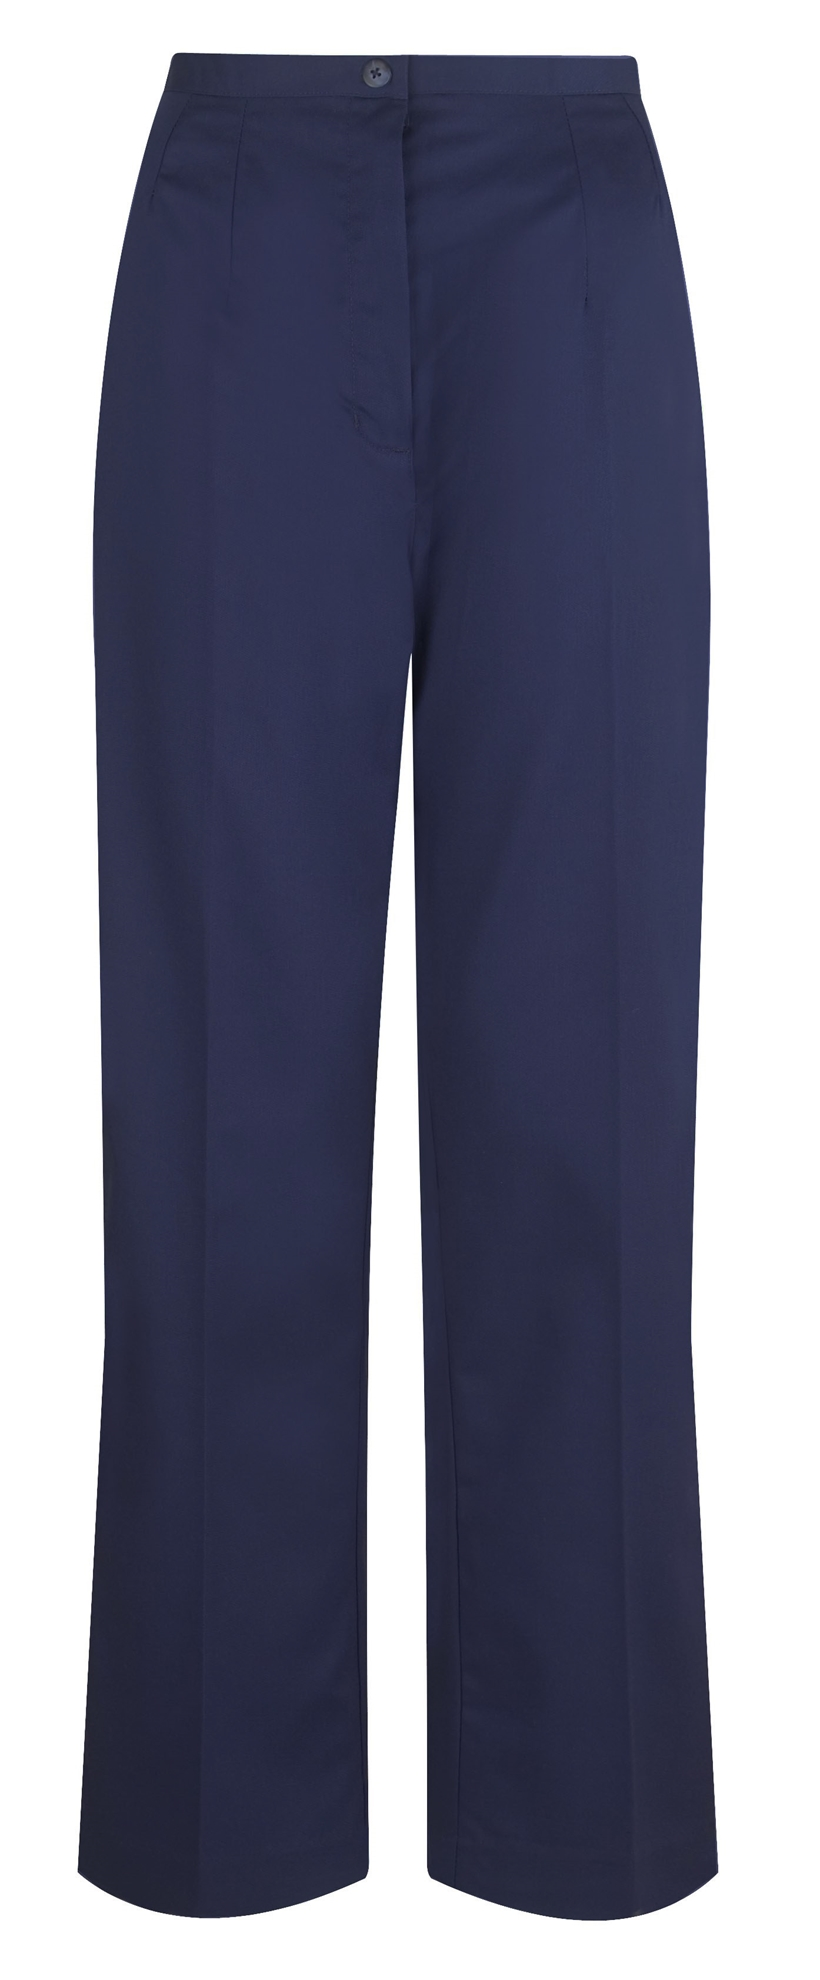 Picture of Advantage Straight Leg Trousers - Navy